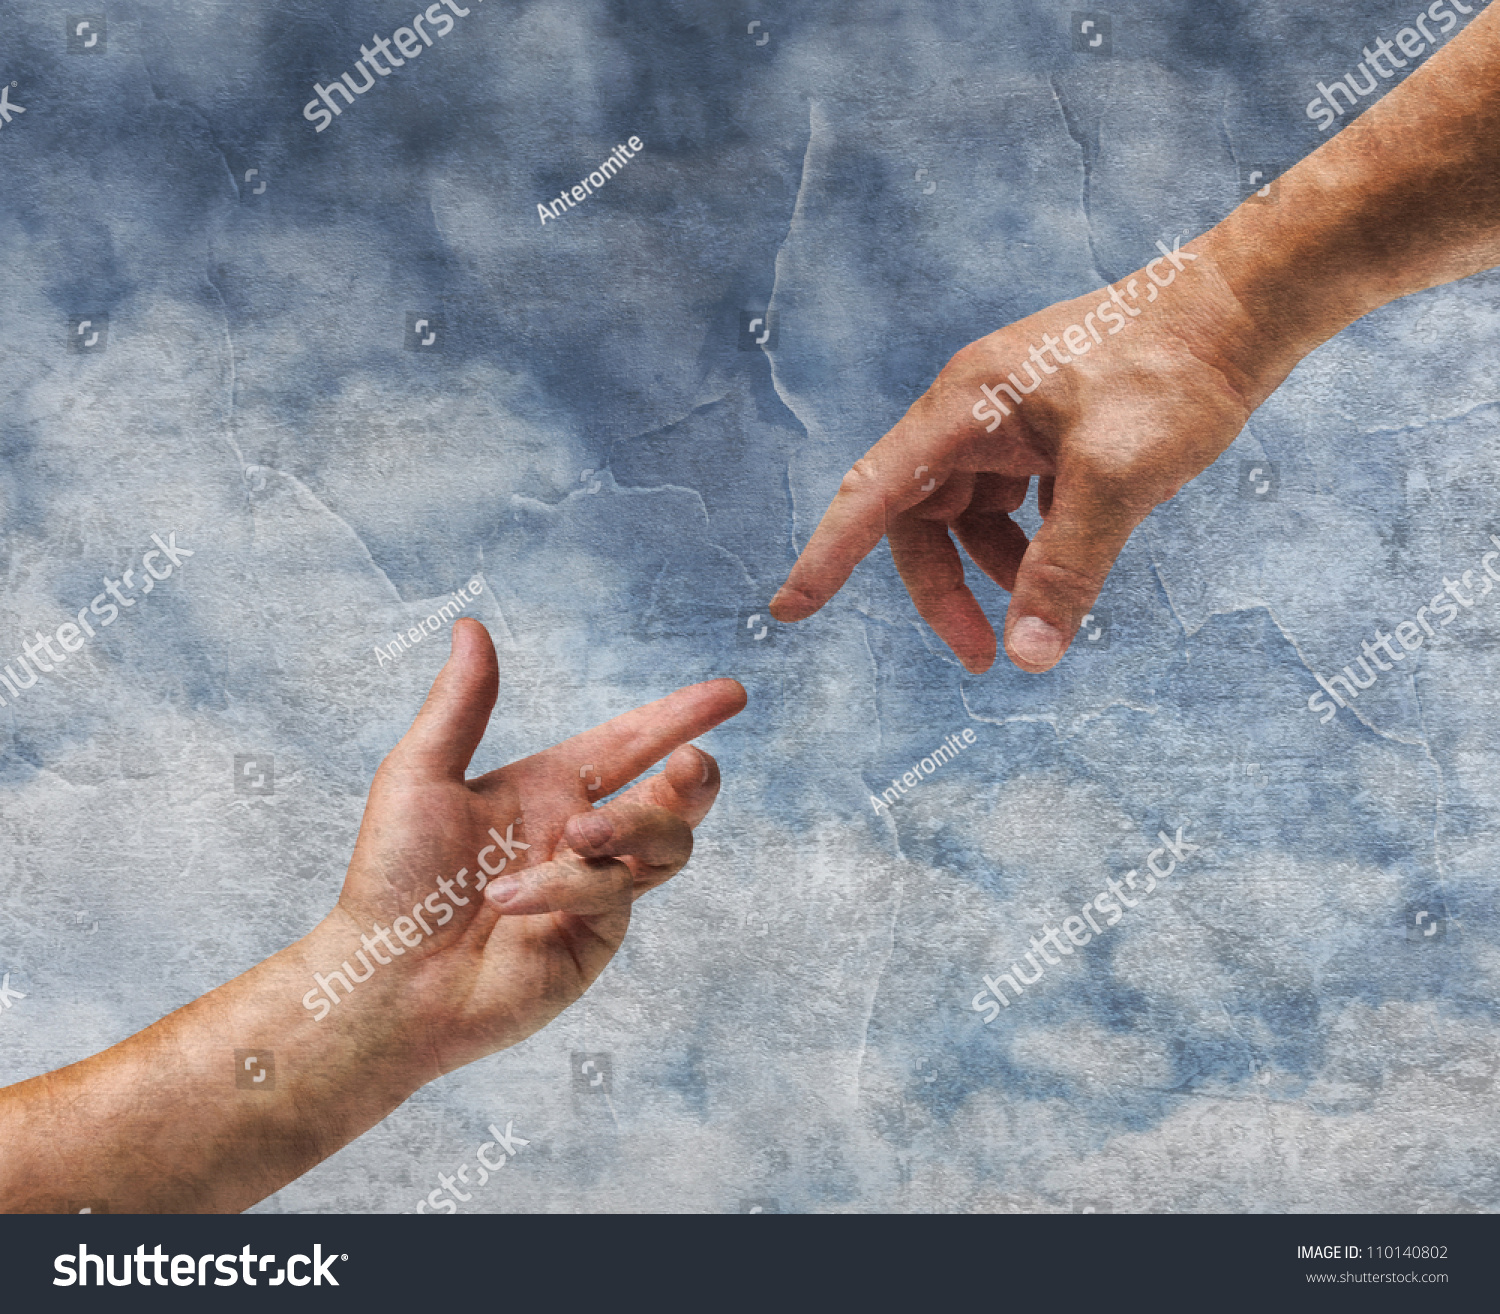 Two hands god adam reaching old stock photo 110140802 for Watercolor paintings of hands